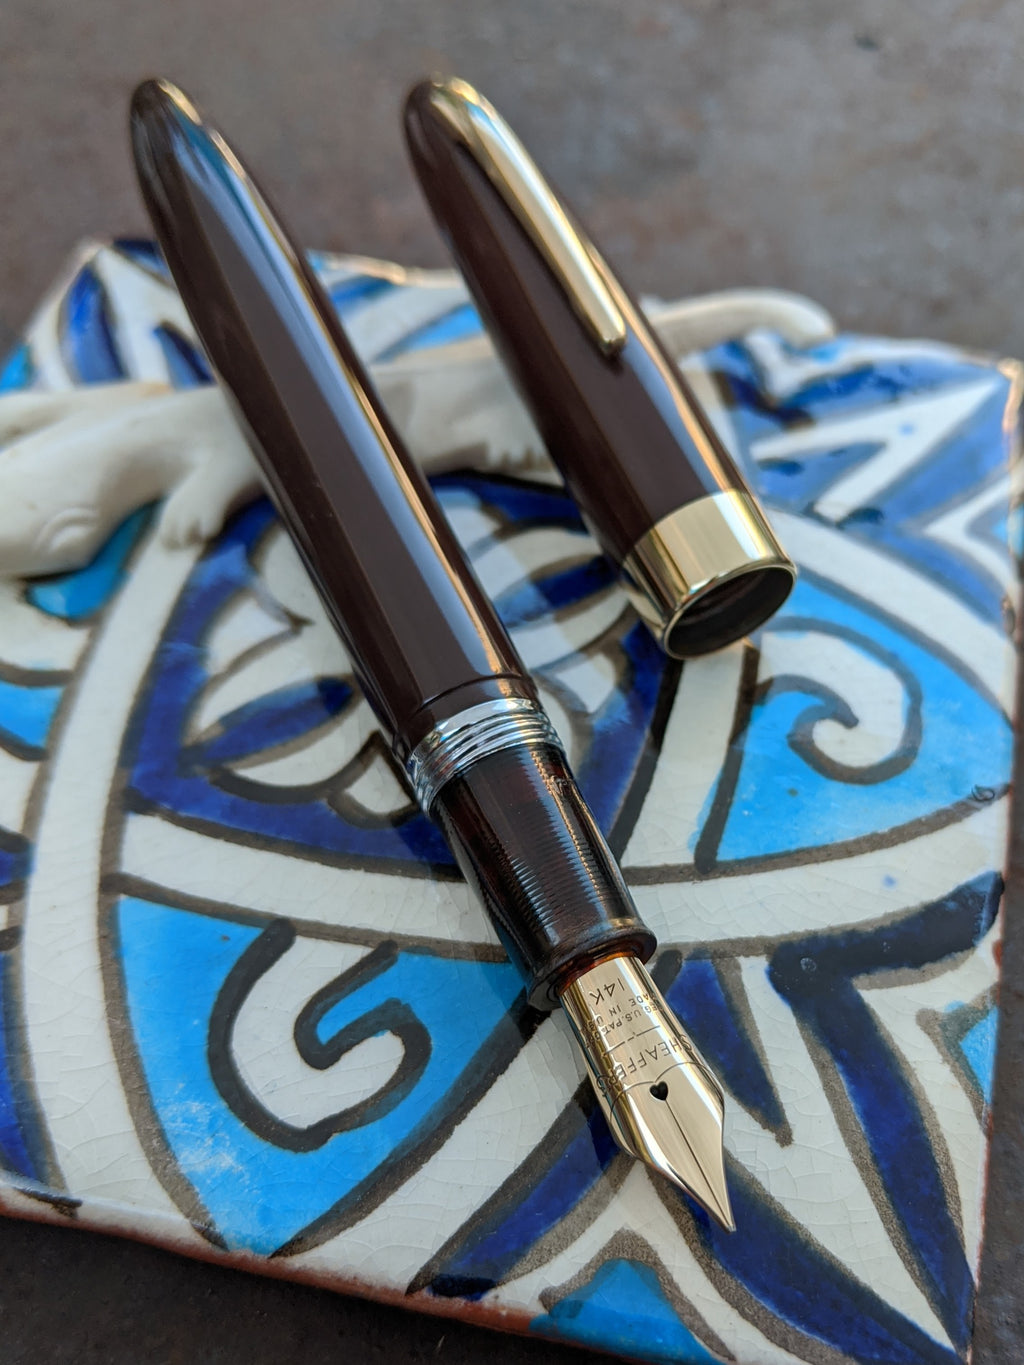 1949 Umber Sheaffer Touchdown Statesman - fine/extra-fine